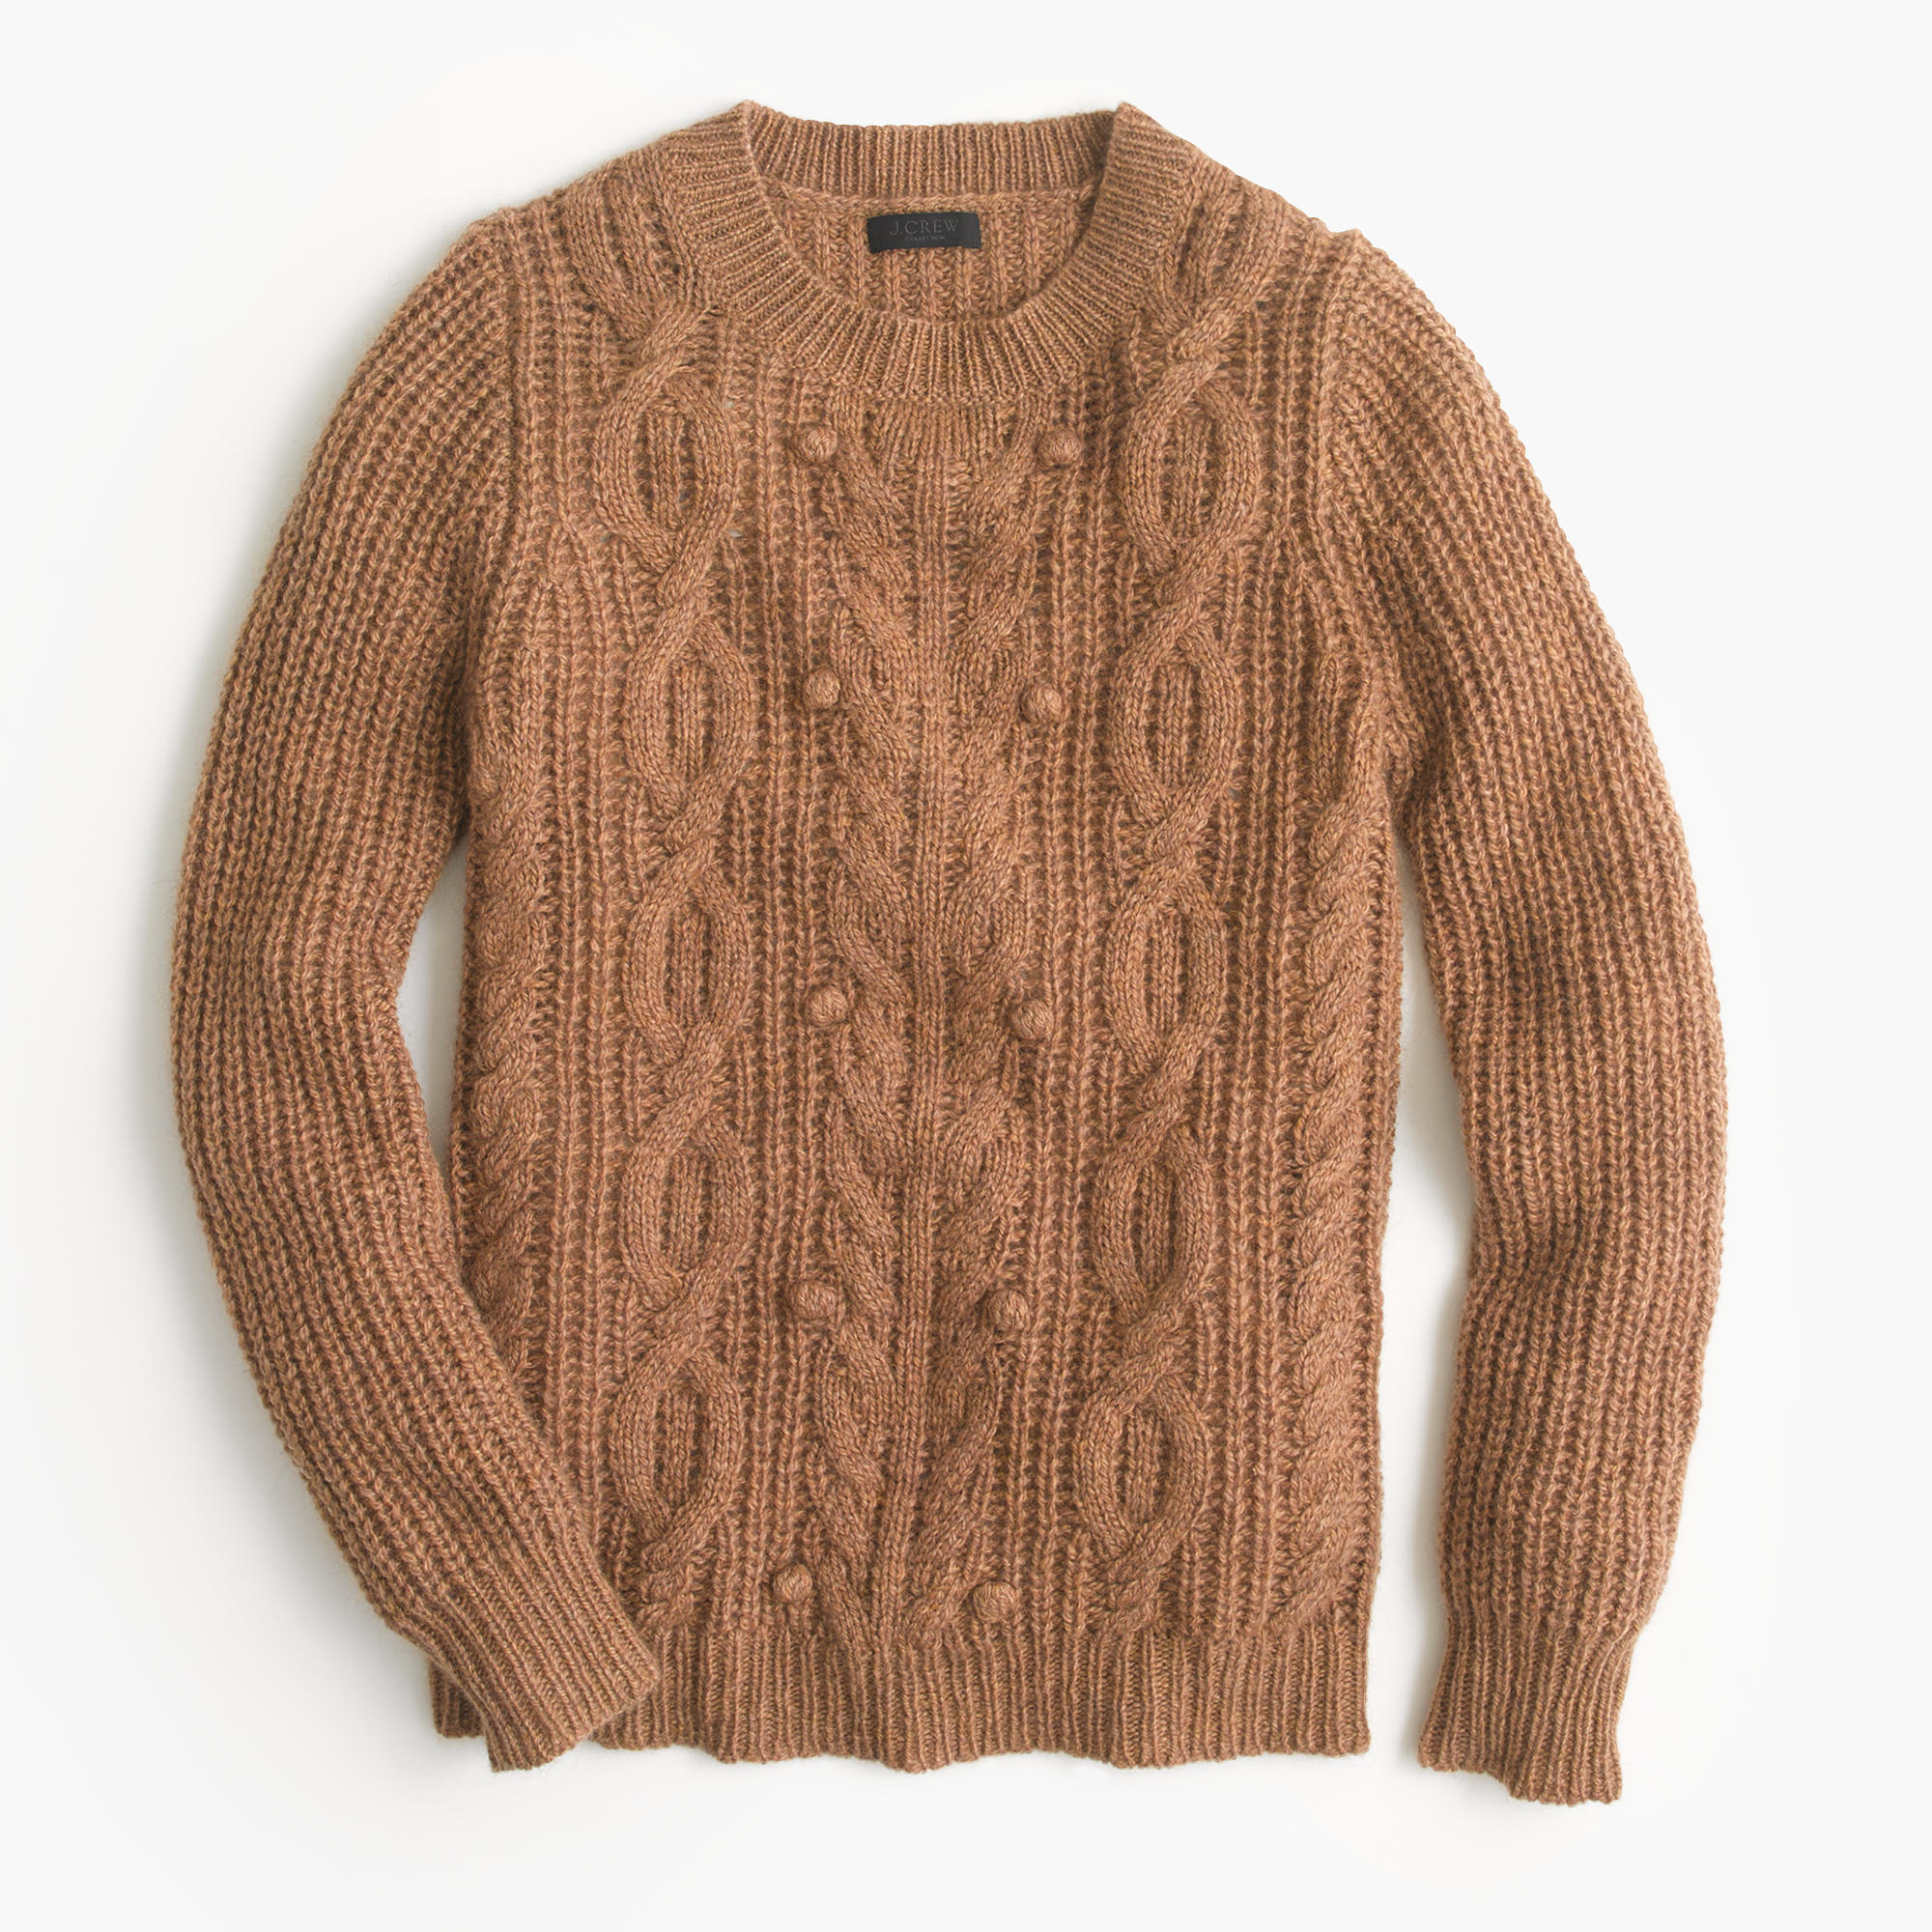 J.crew Italian Cashmere Cable Sweater With Pom-poms in Brown | Lyst